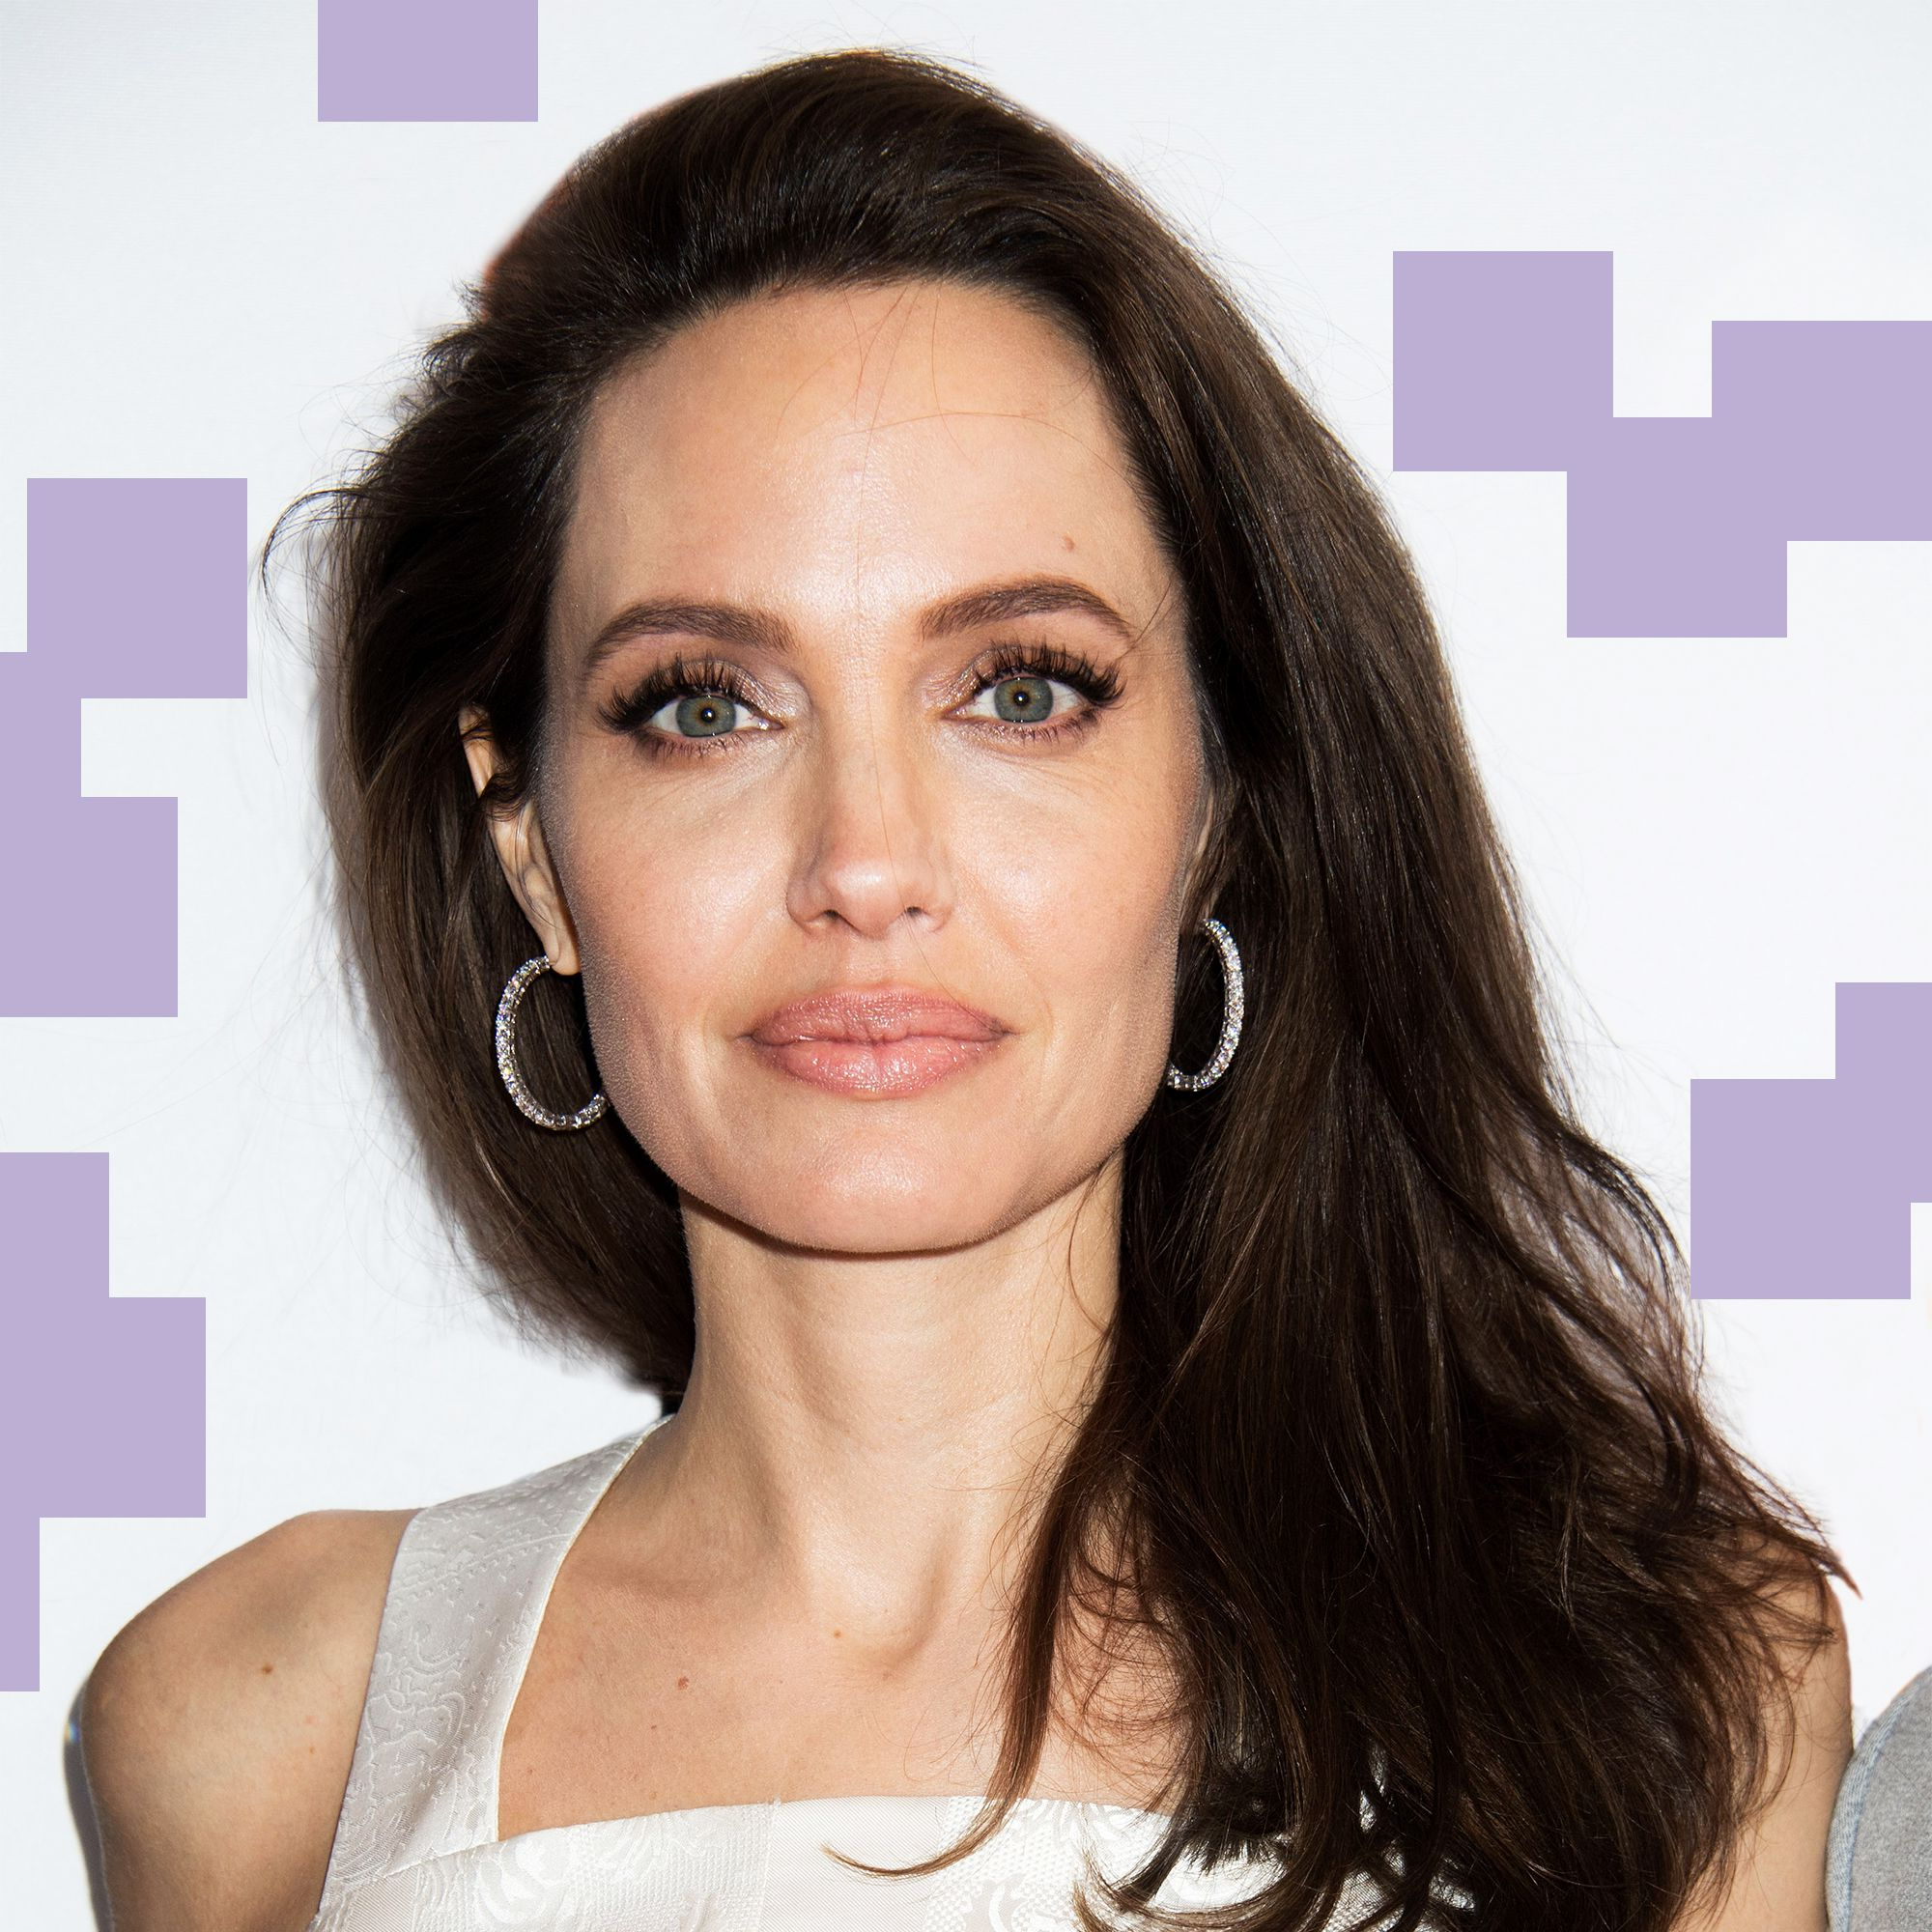 Angelina Jolie Haircut Blunt Trim Fall Trends Intended For Angelina Jolie Short Hairstyles (View 11 of 25)